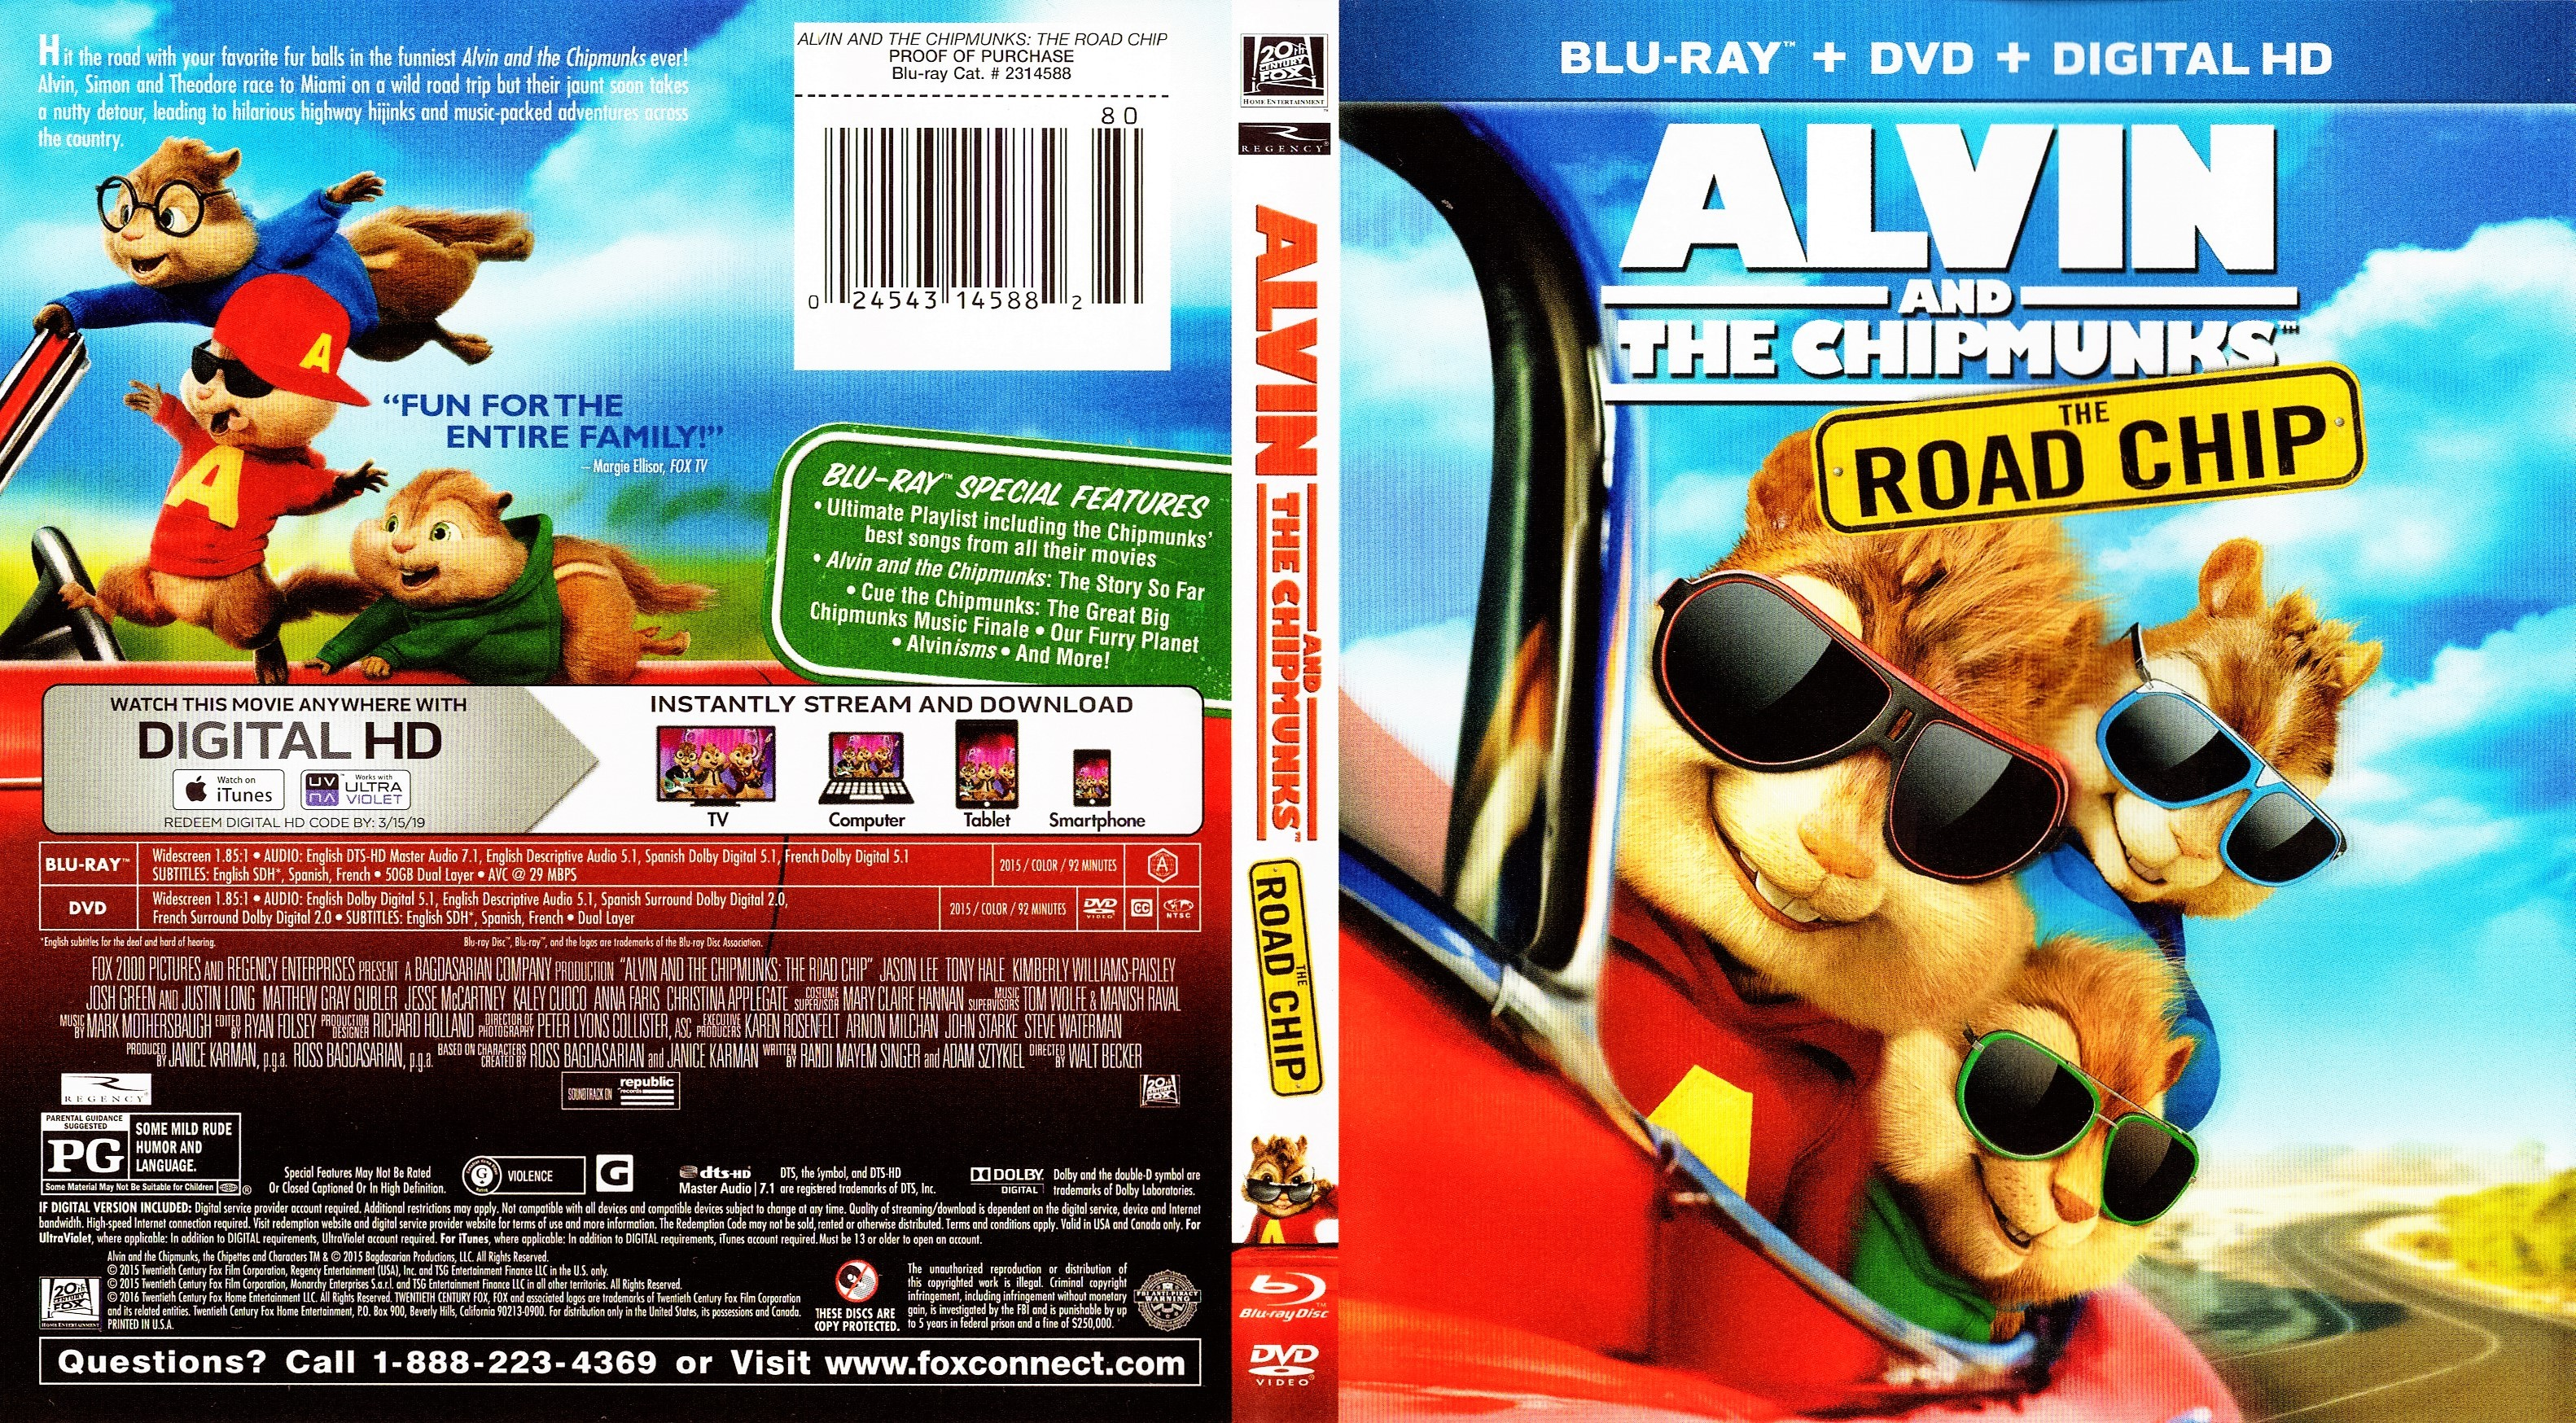 Alvin and the Chipmunks The Road Chip 2015 R1 Blu-Ray DVD